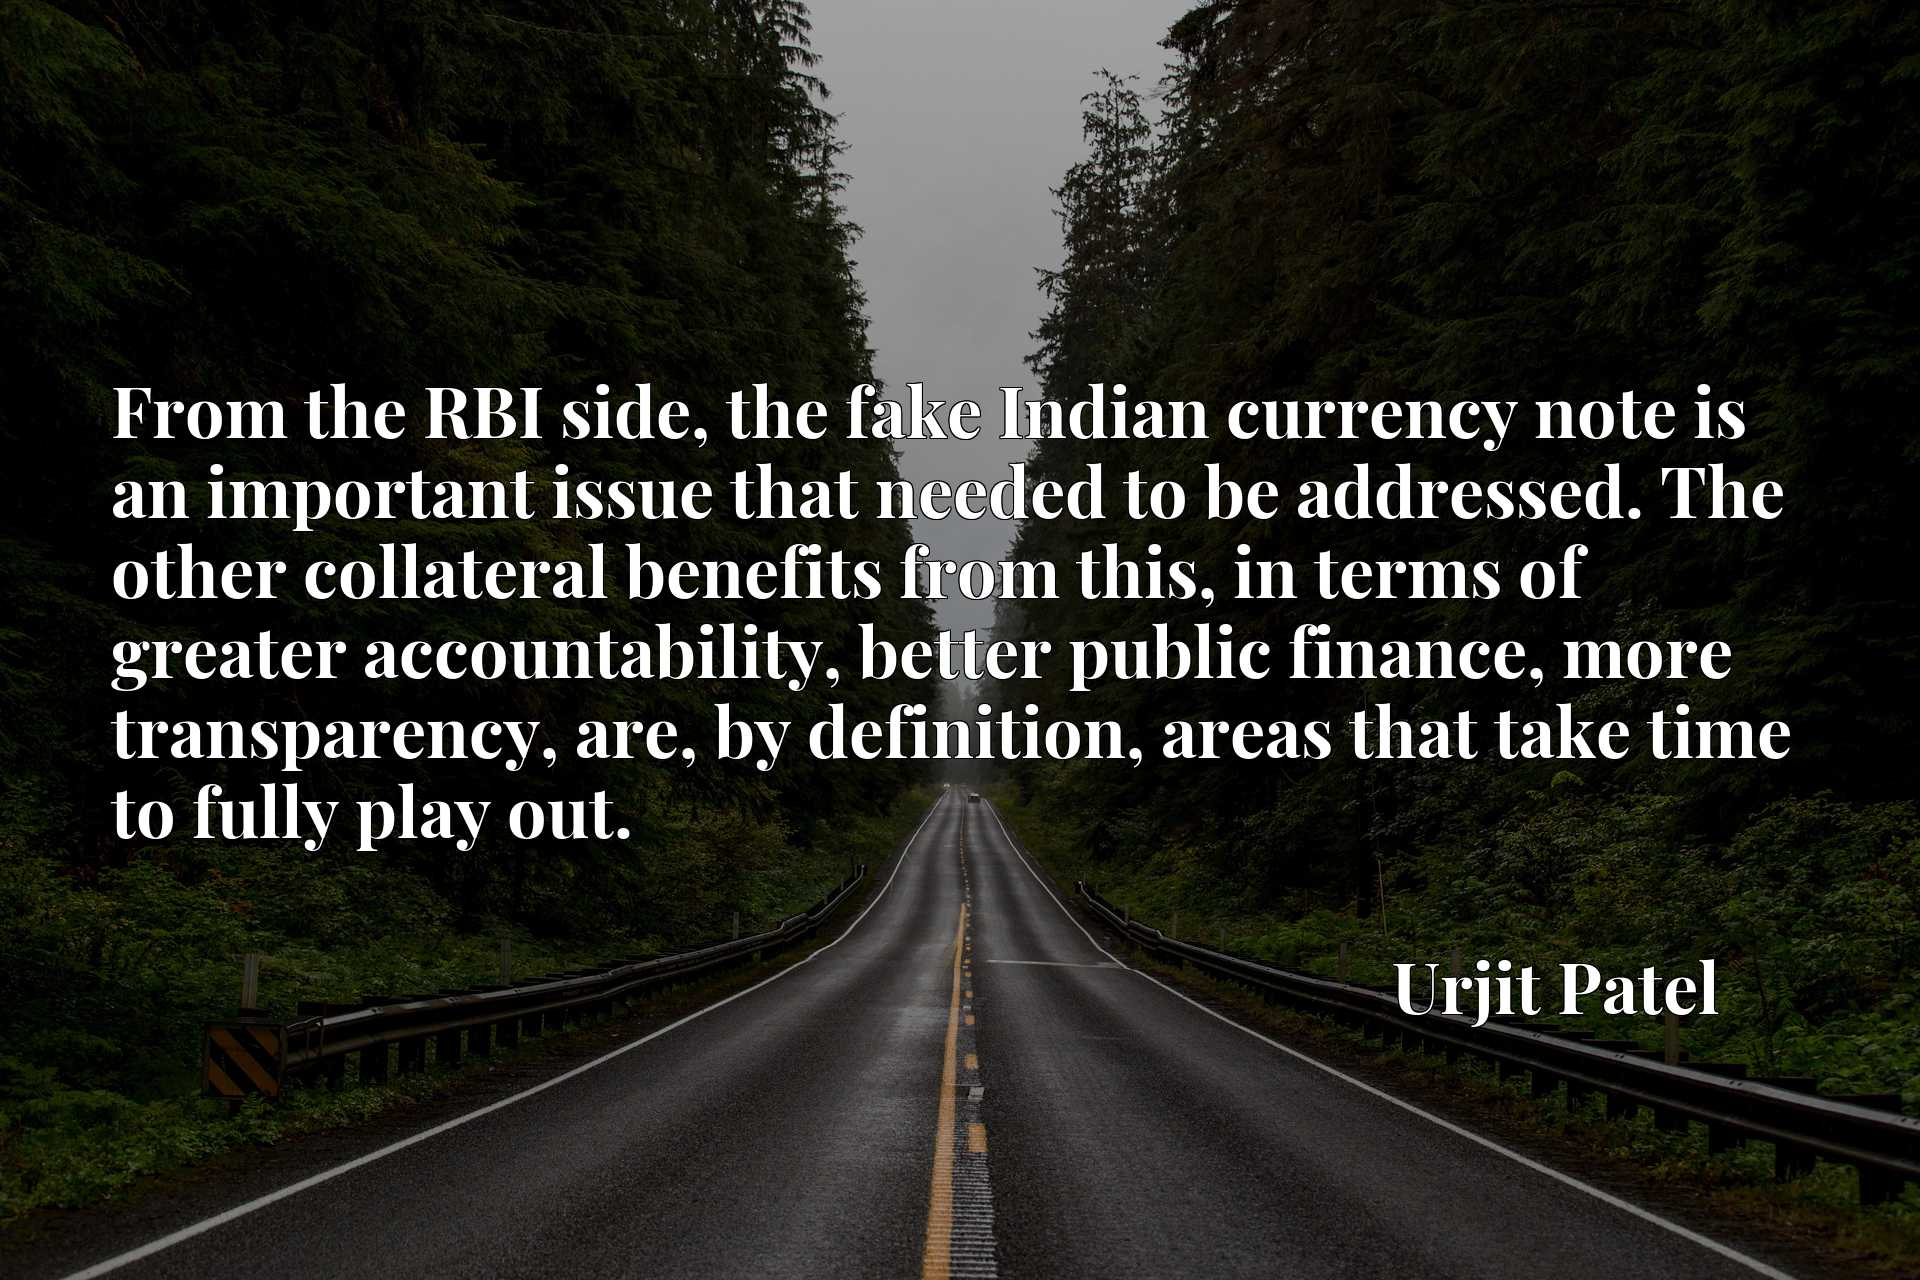 From the RBI side, the fake Indian currency note is an important issue that needed to be addressed. The other collateral benefits from this, in terms of greater accountability, better public finance, more transparency, are, by definition, areas that take time to fully play out.